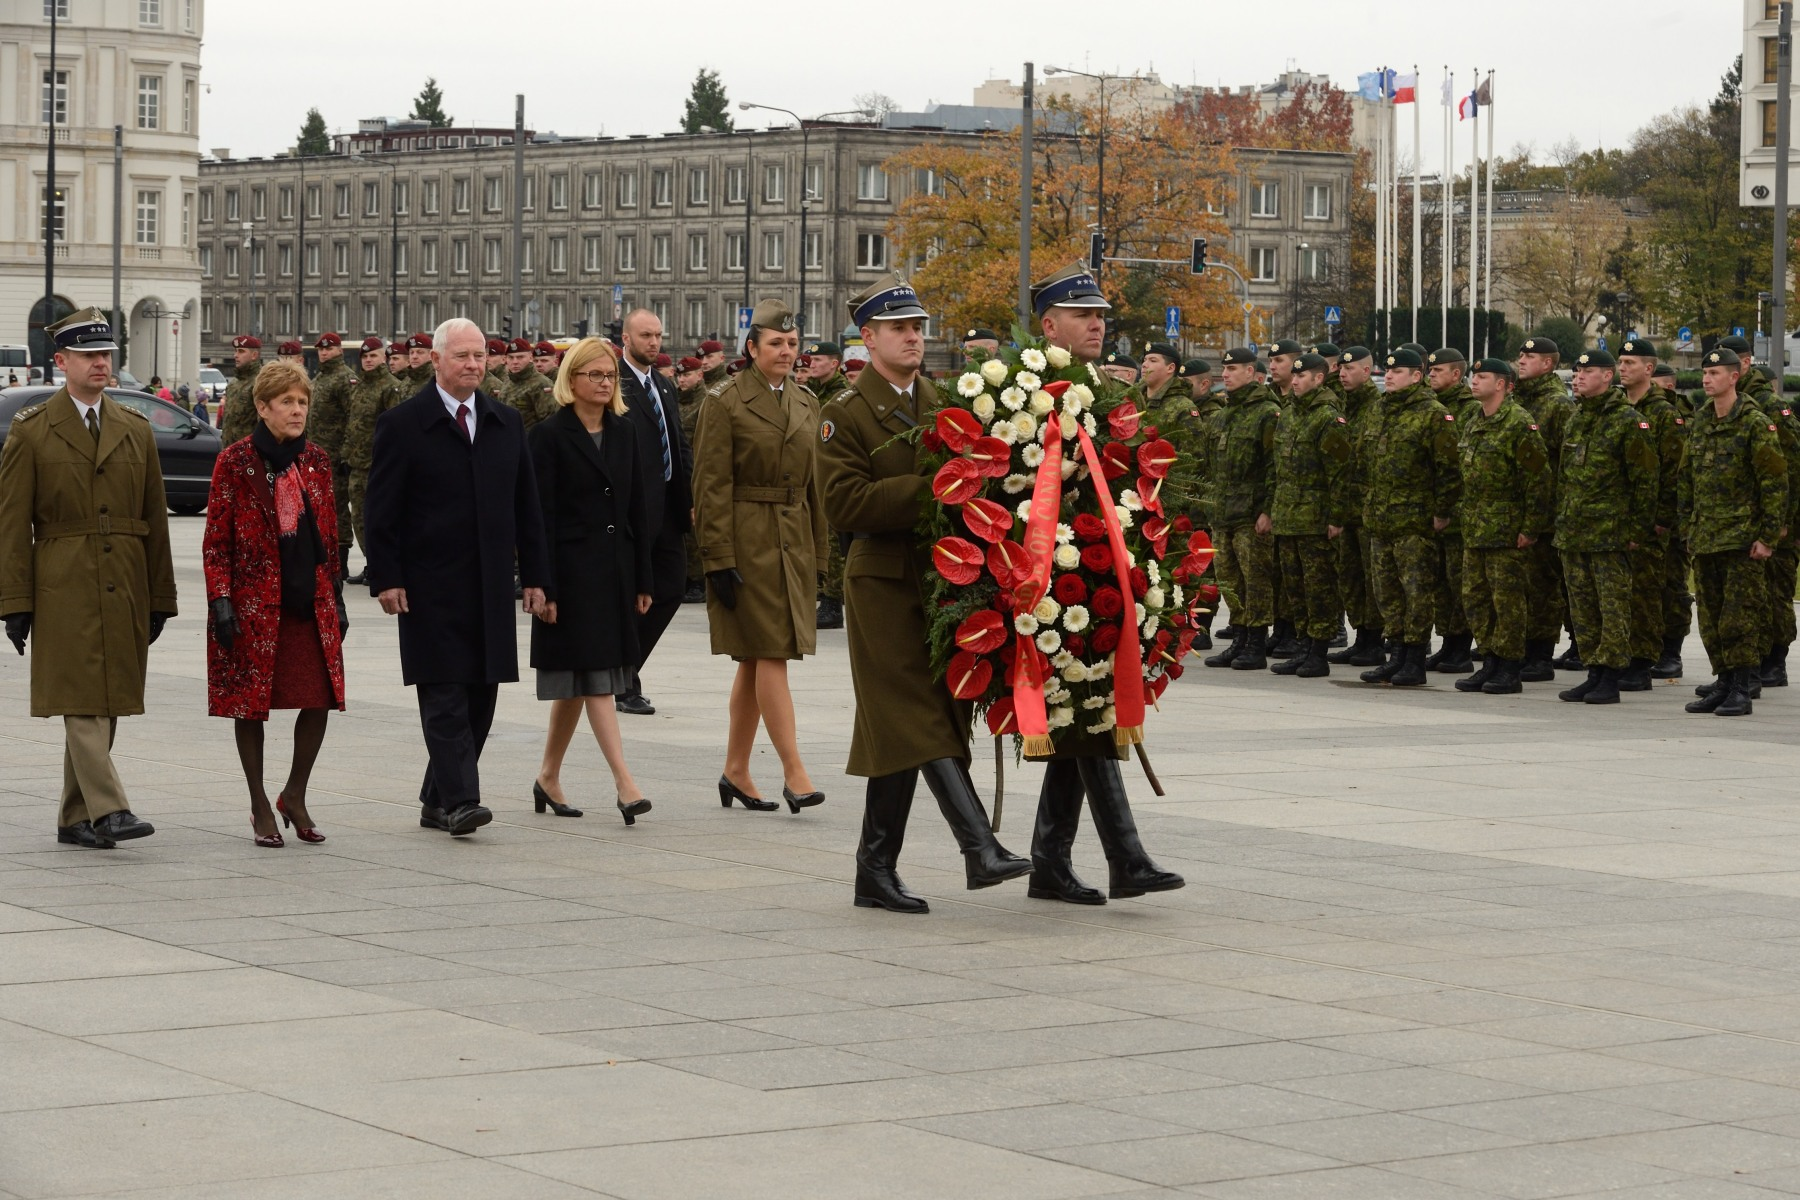 Their Excellencies payed tribute to Polish soldiers and commemorated Canada-Poland joint military efforts by laying a wreath at the Tomb of the Unknown Soldier.